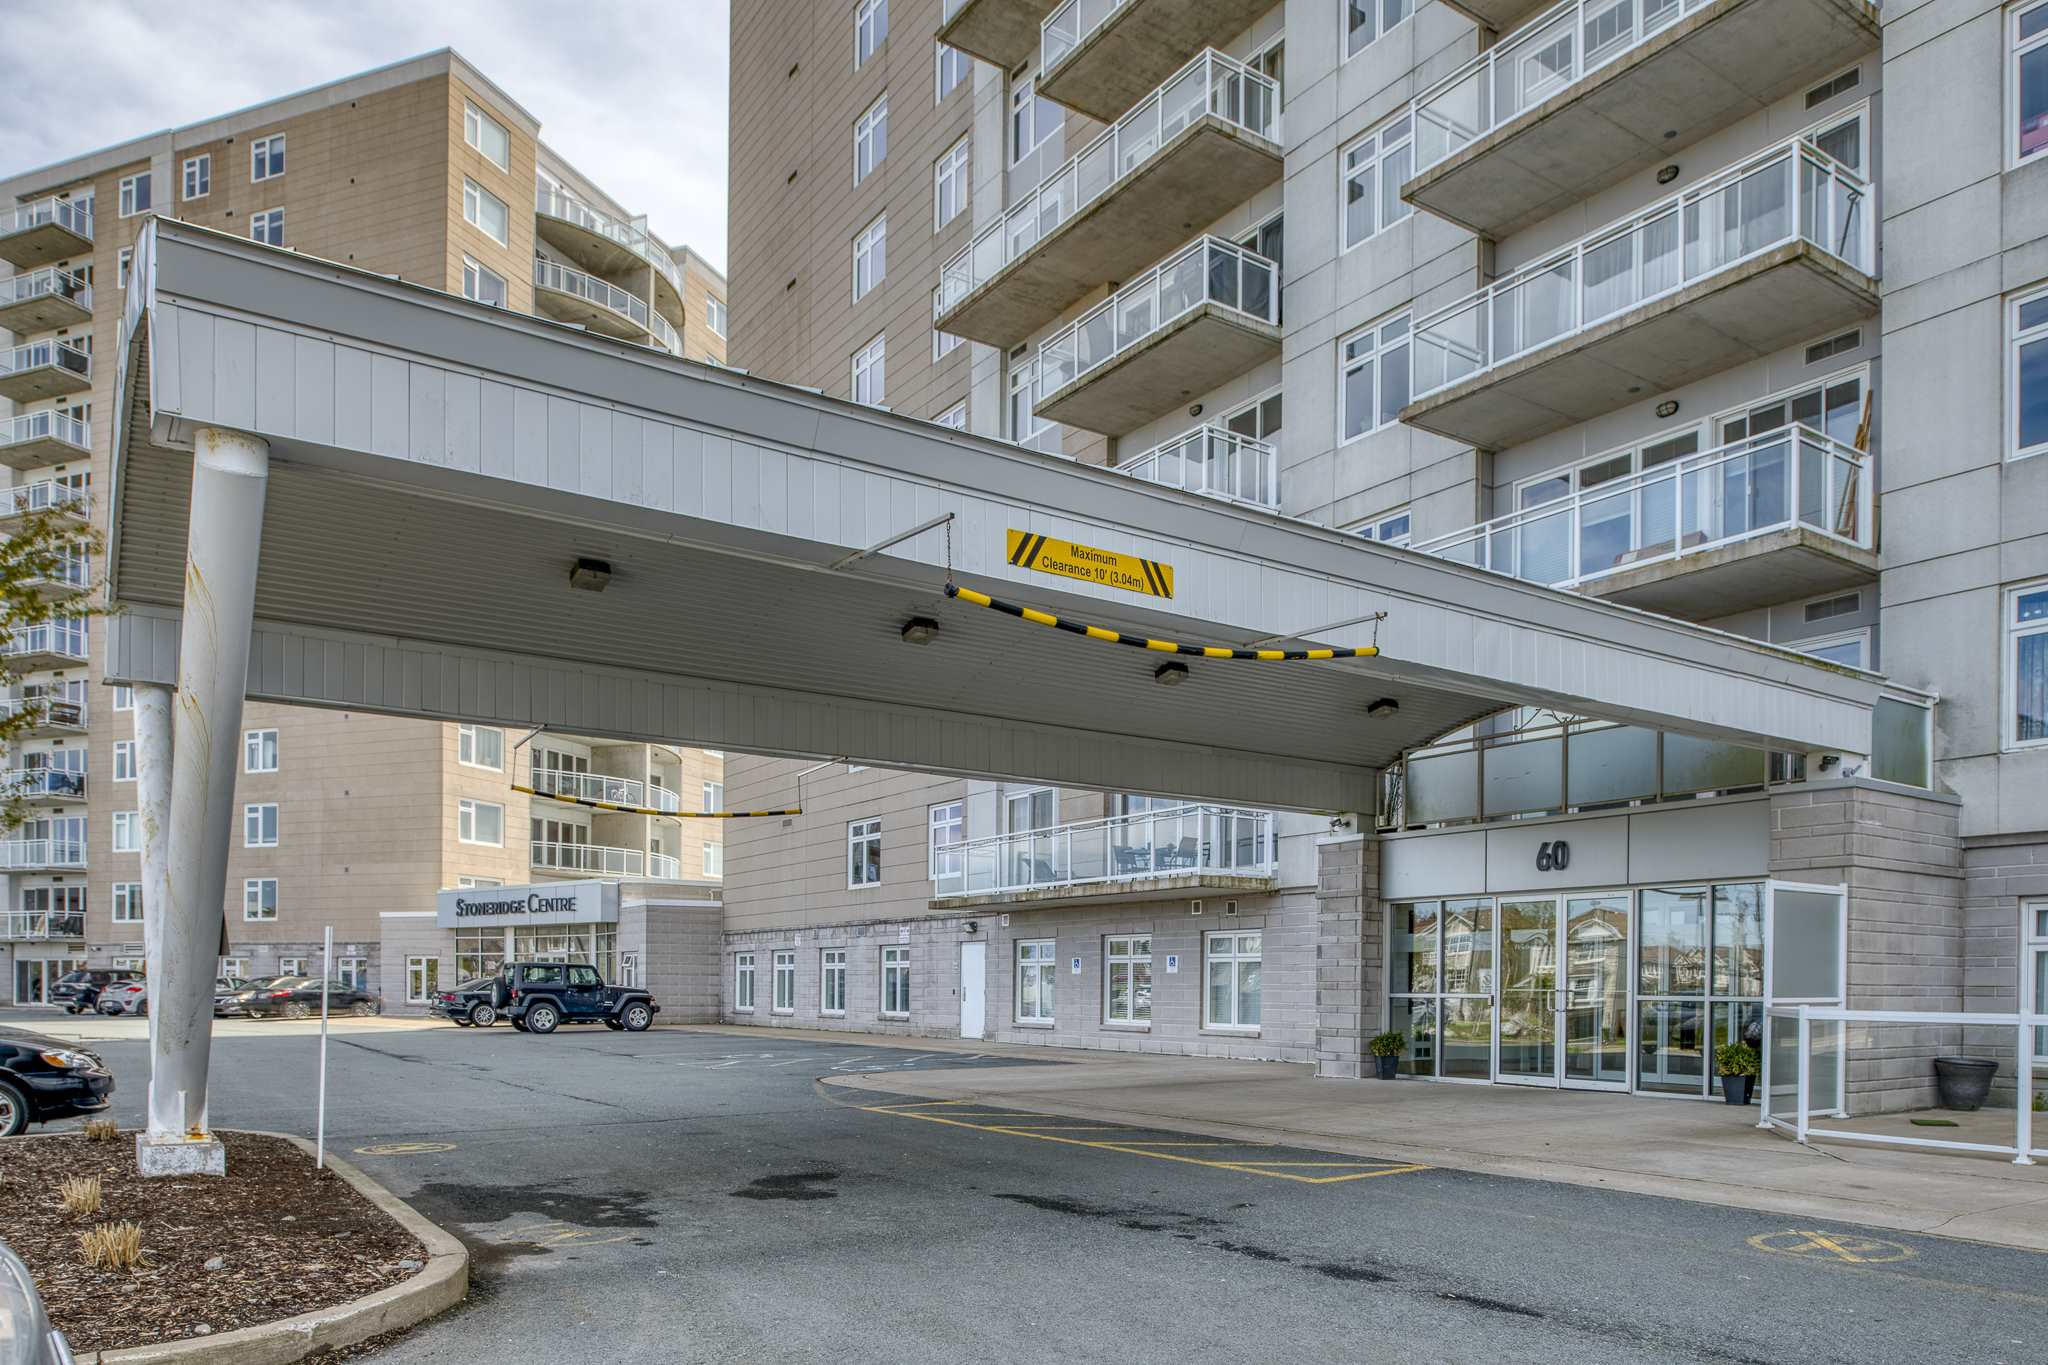 Main Photo: 908 60 Walter Havill Drive in Halifax: 8-Armdale/Purcell`s Cove/Herring Cove Residential for sale (Halifax-Dartmouth)  : MLS®# 202100387